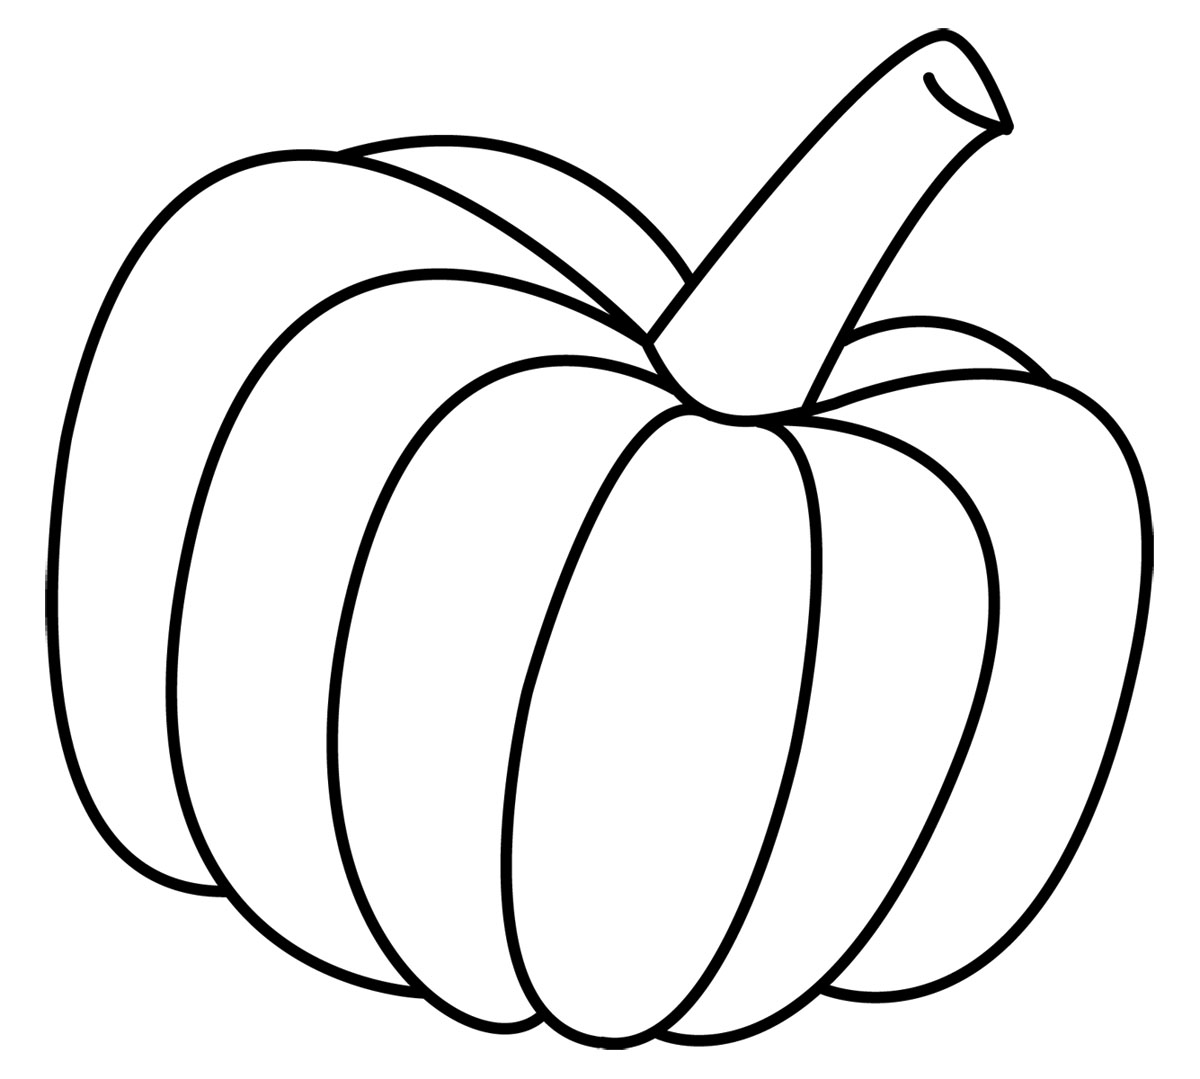 free pumpkin coloring pages printable blank pumpkin coloring pages free printable pumpkin printable free pages coloring pumpkin